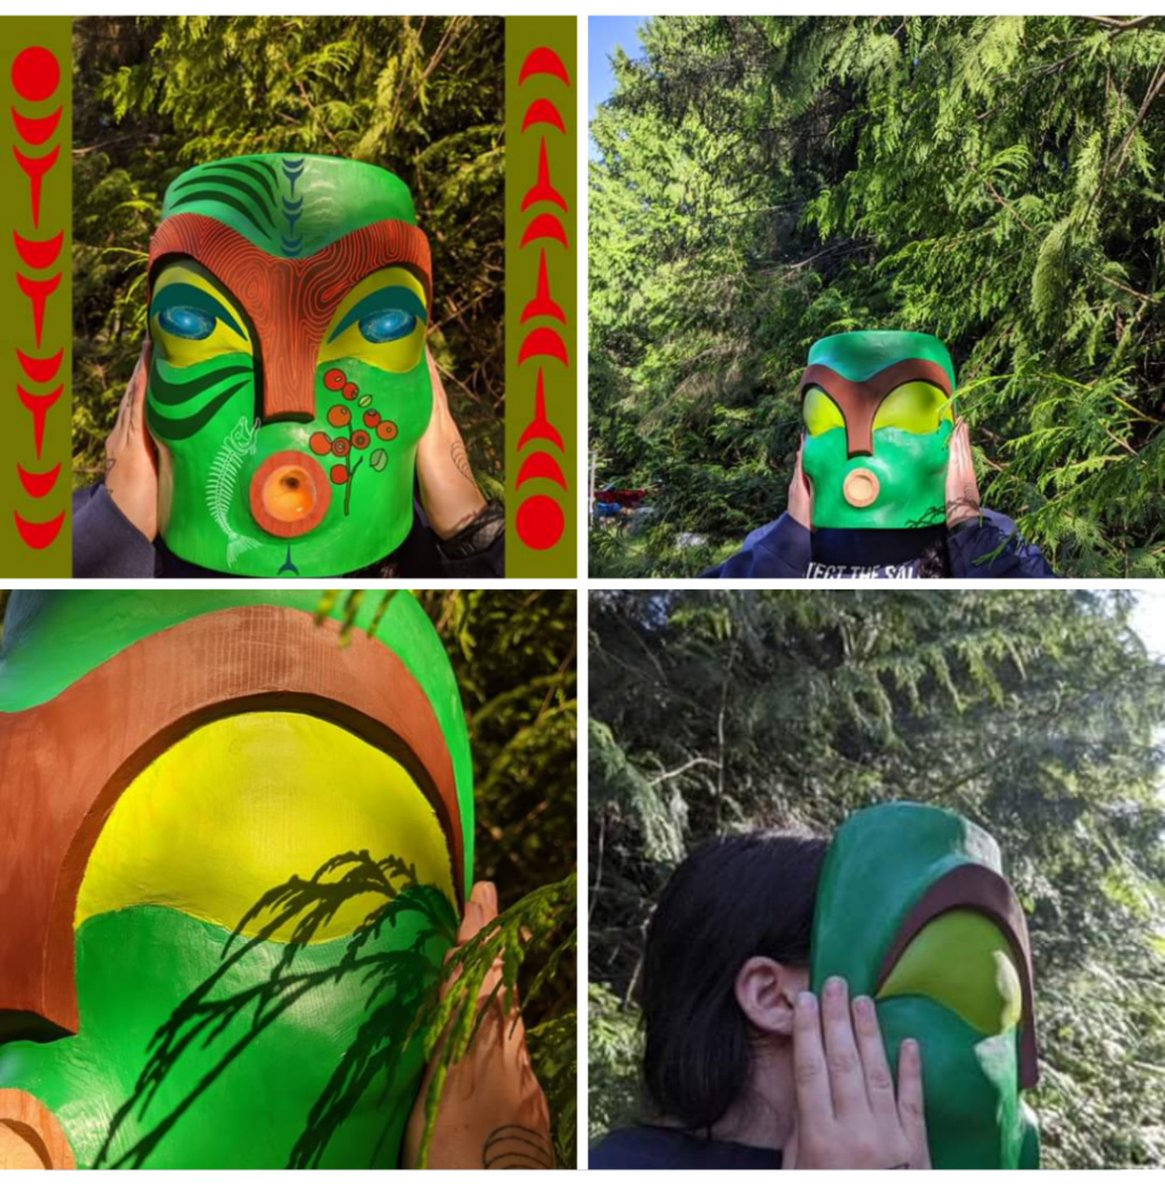 "Oceann Hyland / Shḵwen̓ Xápay̓ay red cedar tree.  ""This mask, along with the digital imagery is my piece... The collective of artists were asked to create pieces relating to our connections to cedar..."" https://m.facebook.com/story.php?story_fbid=2298738757088454&id=1432758217019850 …pic.twitter.com/38cxhtS8Cf"